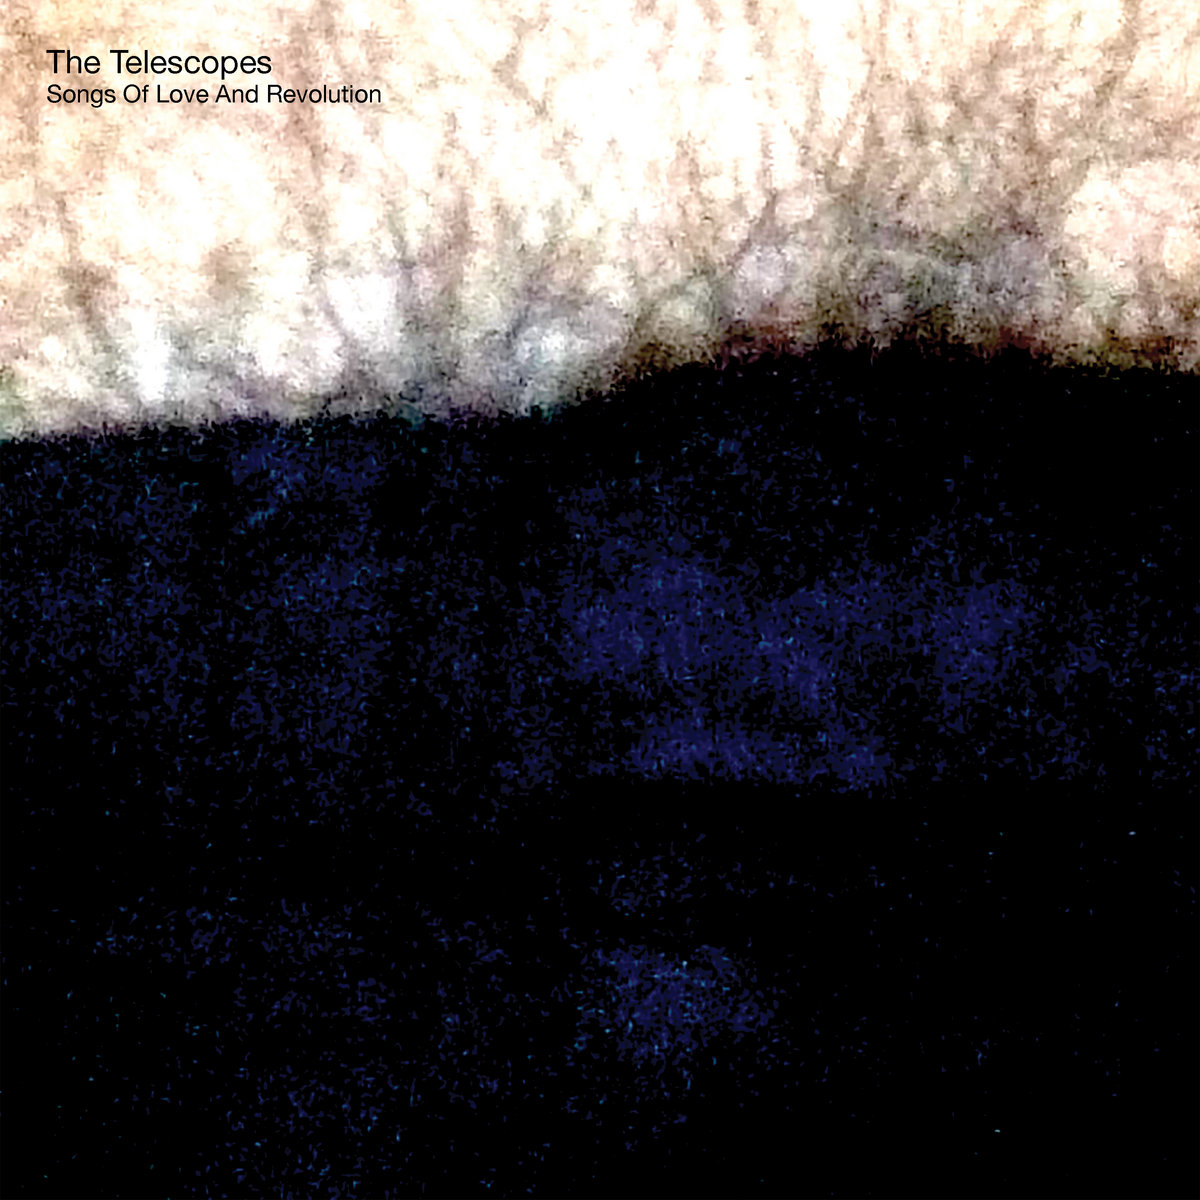 The Telescopes cover